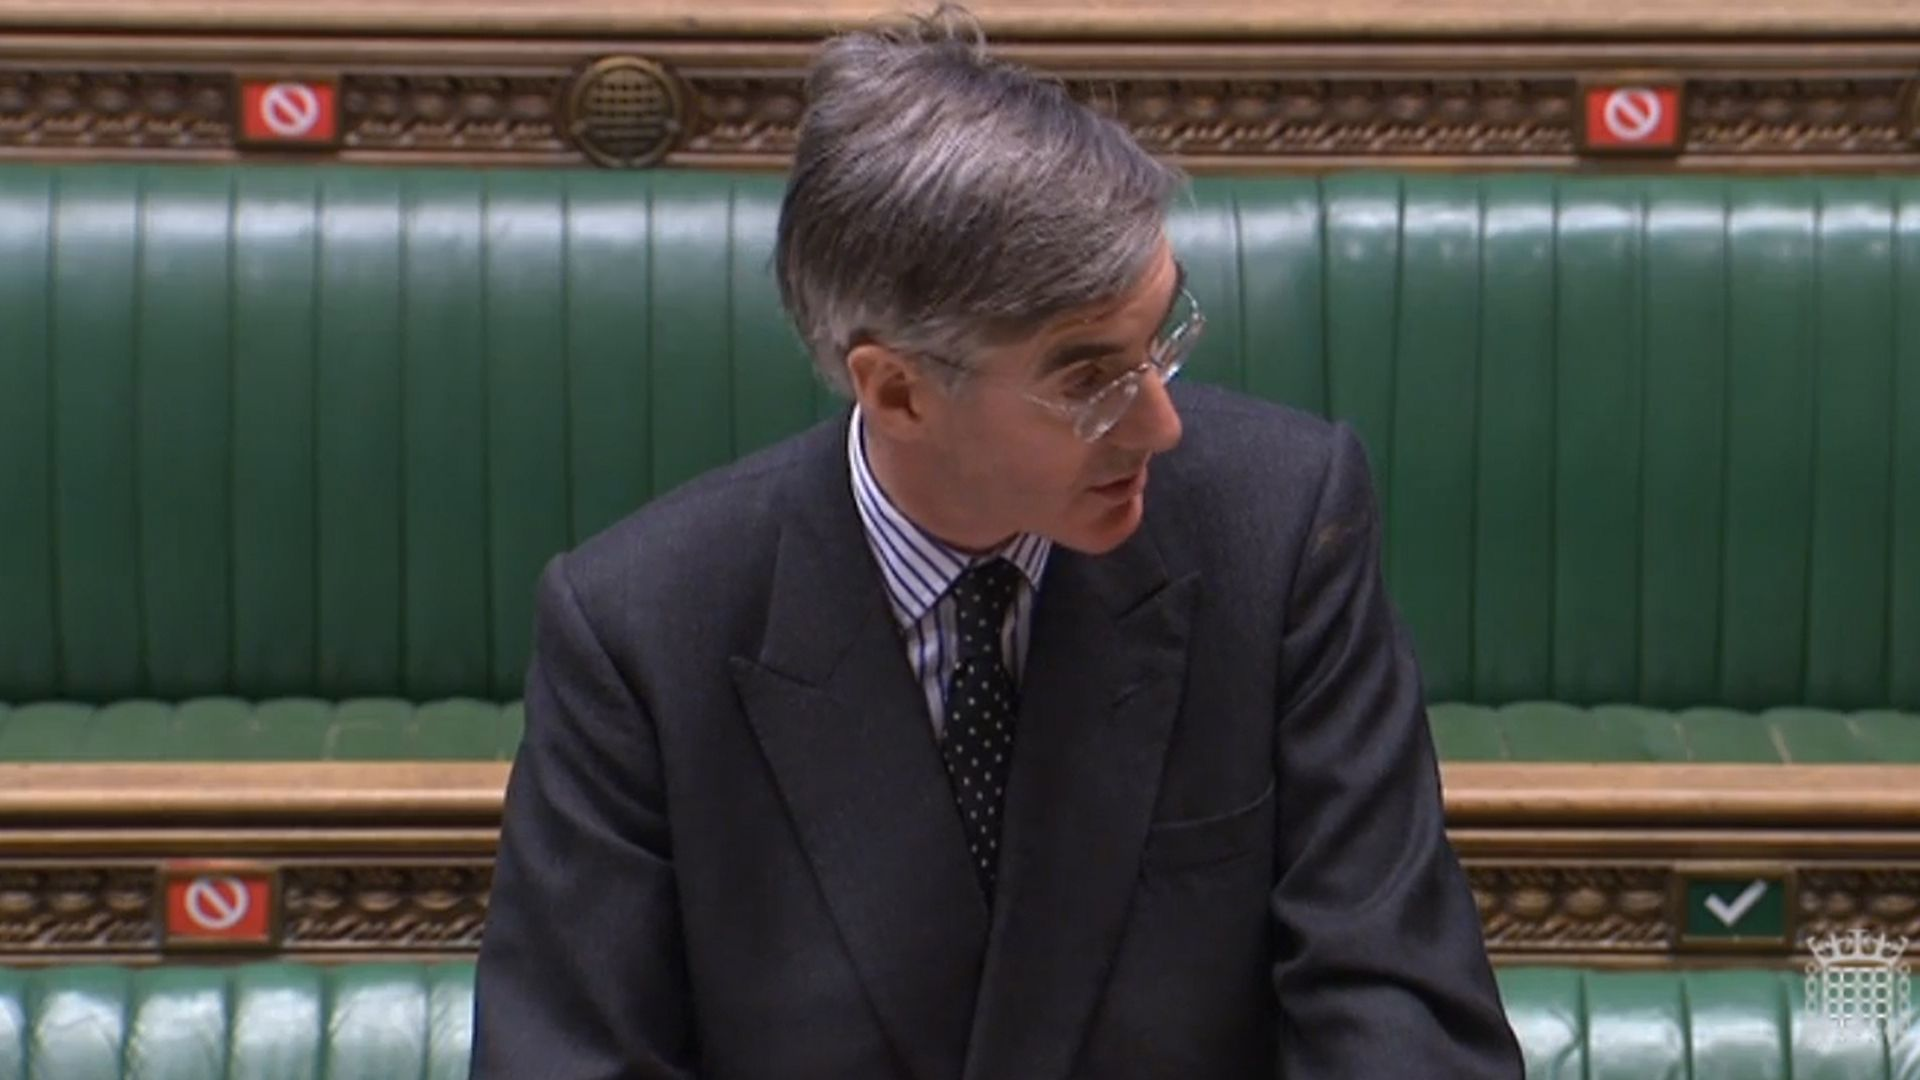 Jacob Rees-Mogg in the House of Commons - Credit: PA